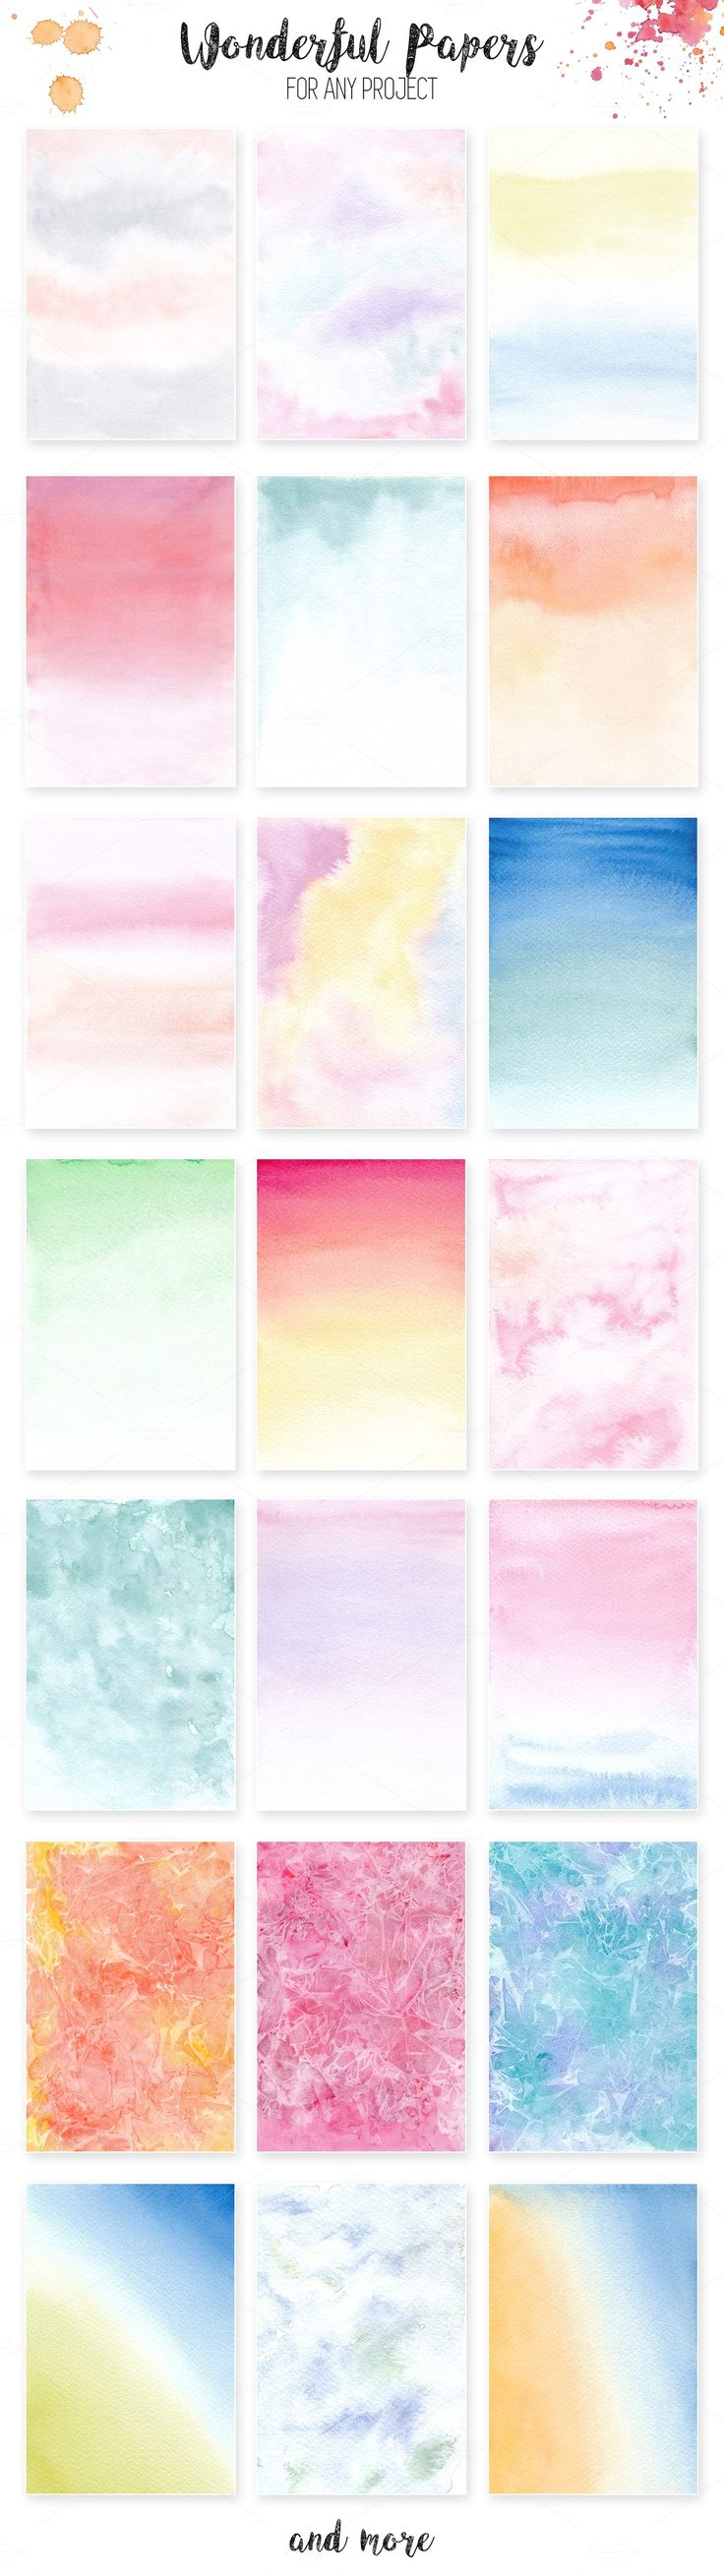 Watercolor Textures. Light & Bright - Textures - 5  #watercolor #watercolour #papers #watercolorpapers #digitalpapers #ombrepapers #scrapbookingpapers #scrapbook #scrapbooking #watercolorwash #clipart #digitalclipart